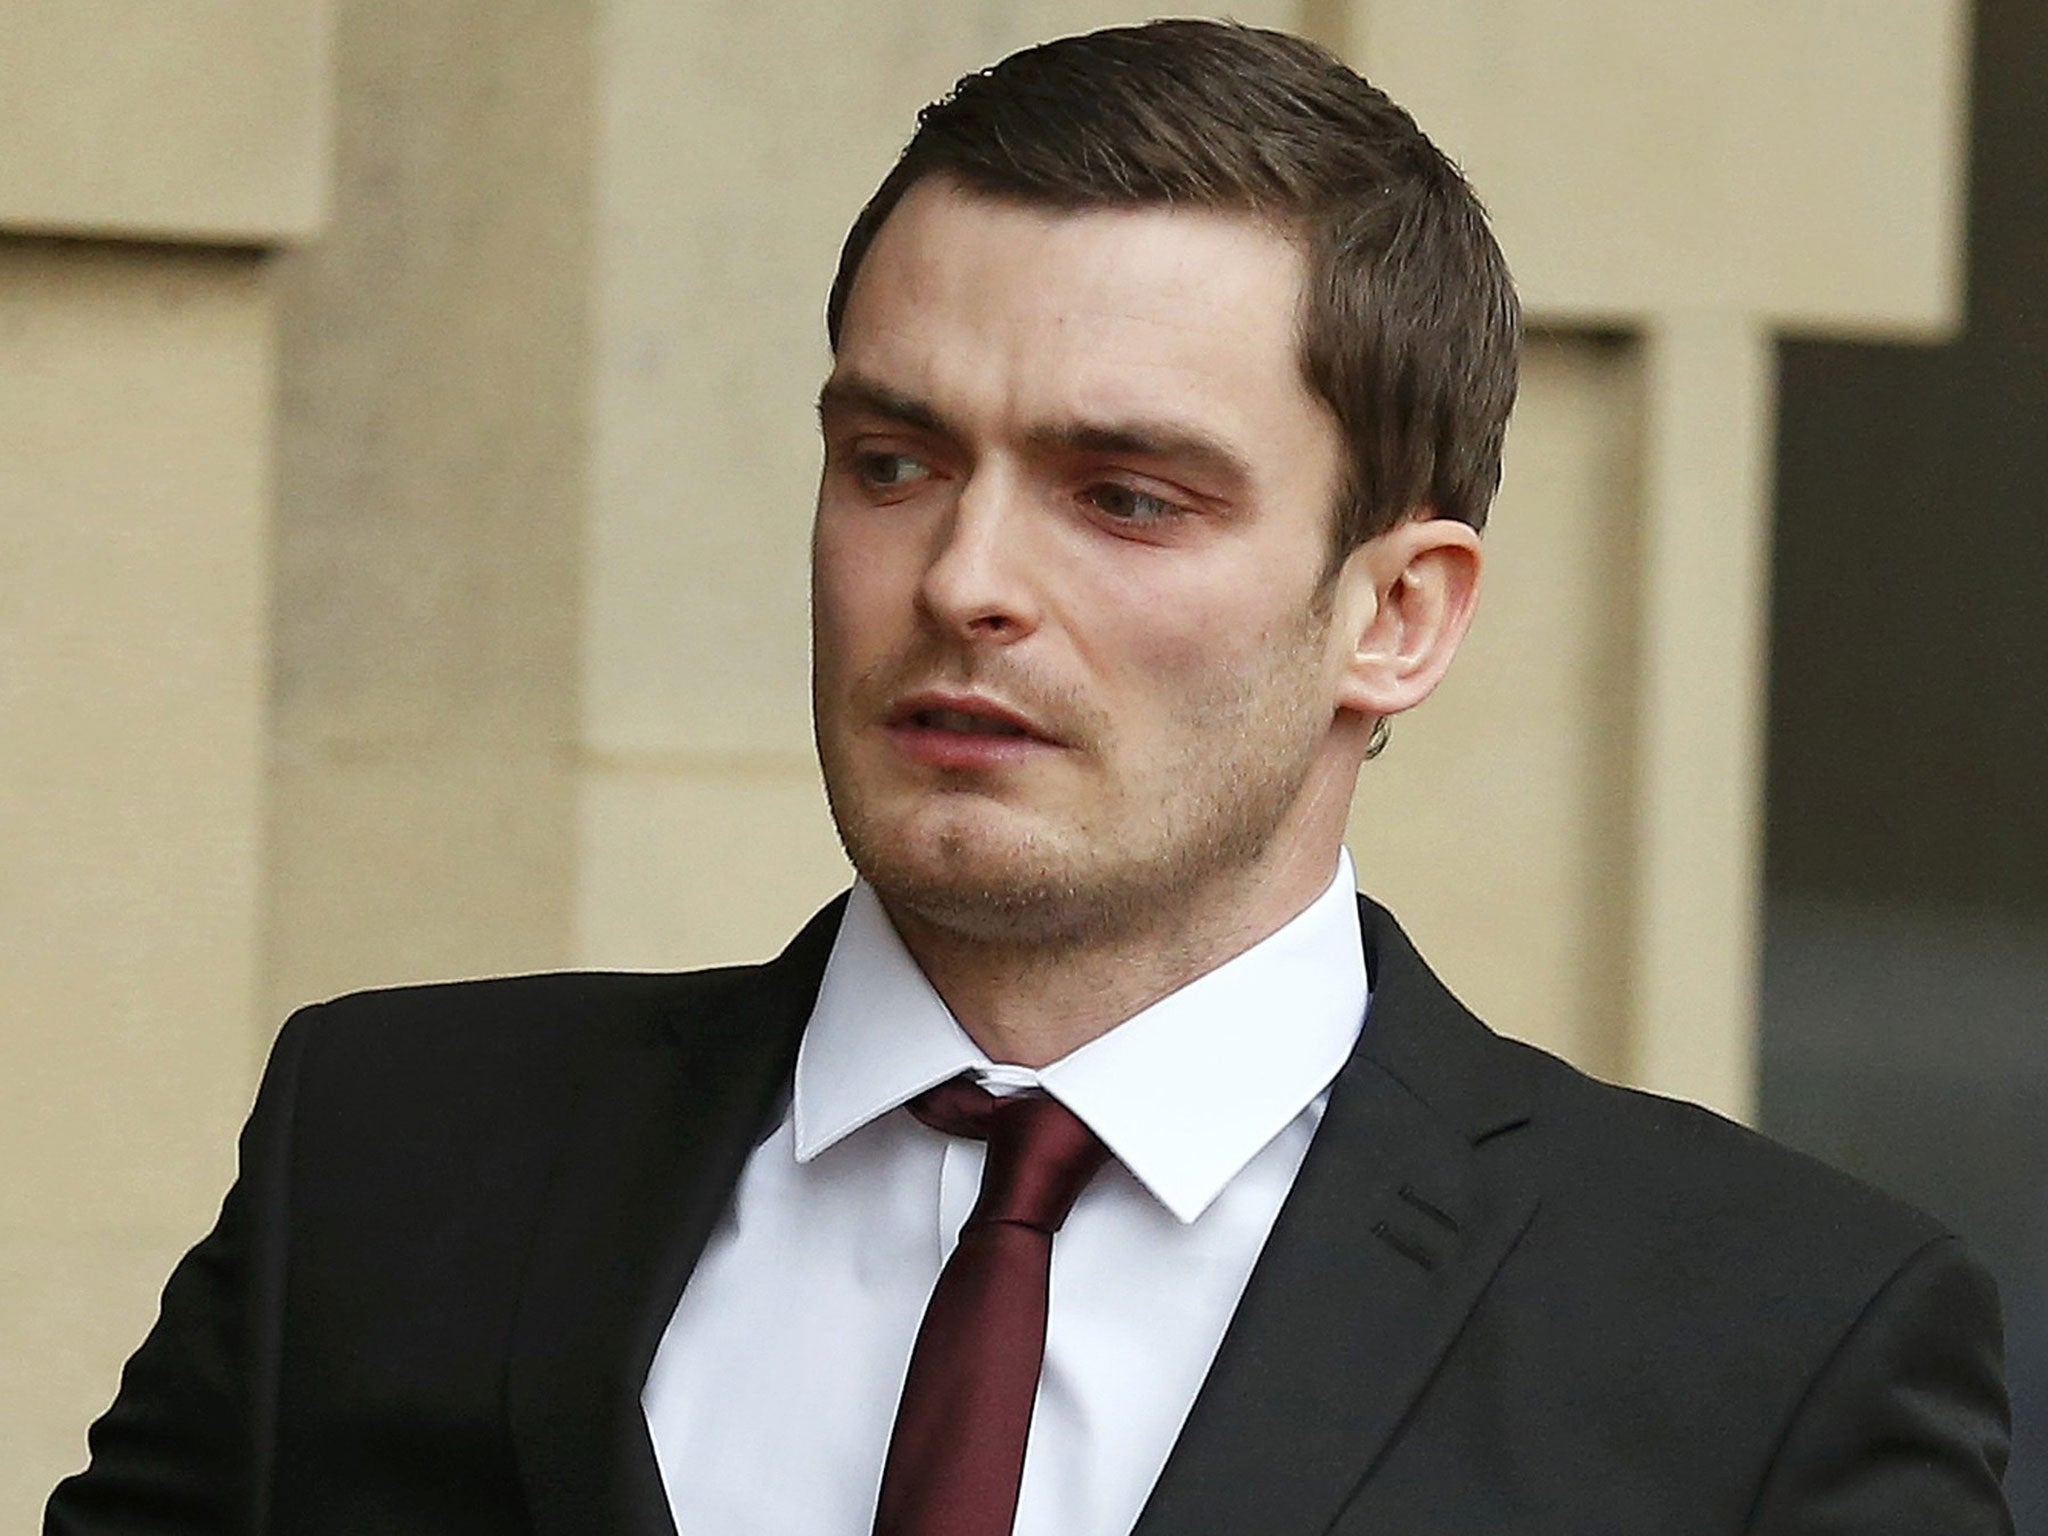 news crime adam johnson sexual encounter with year idolised